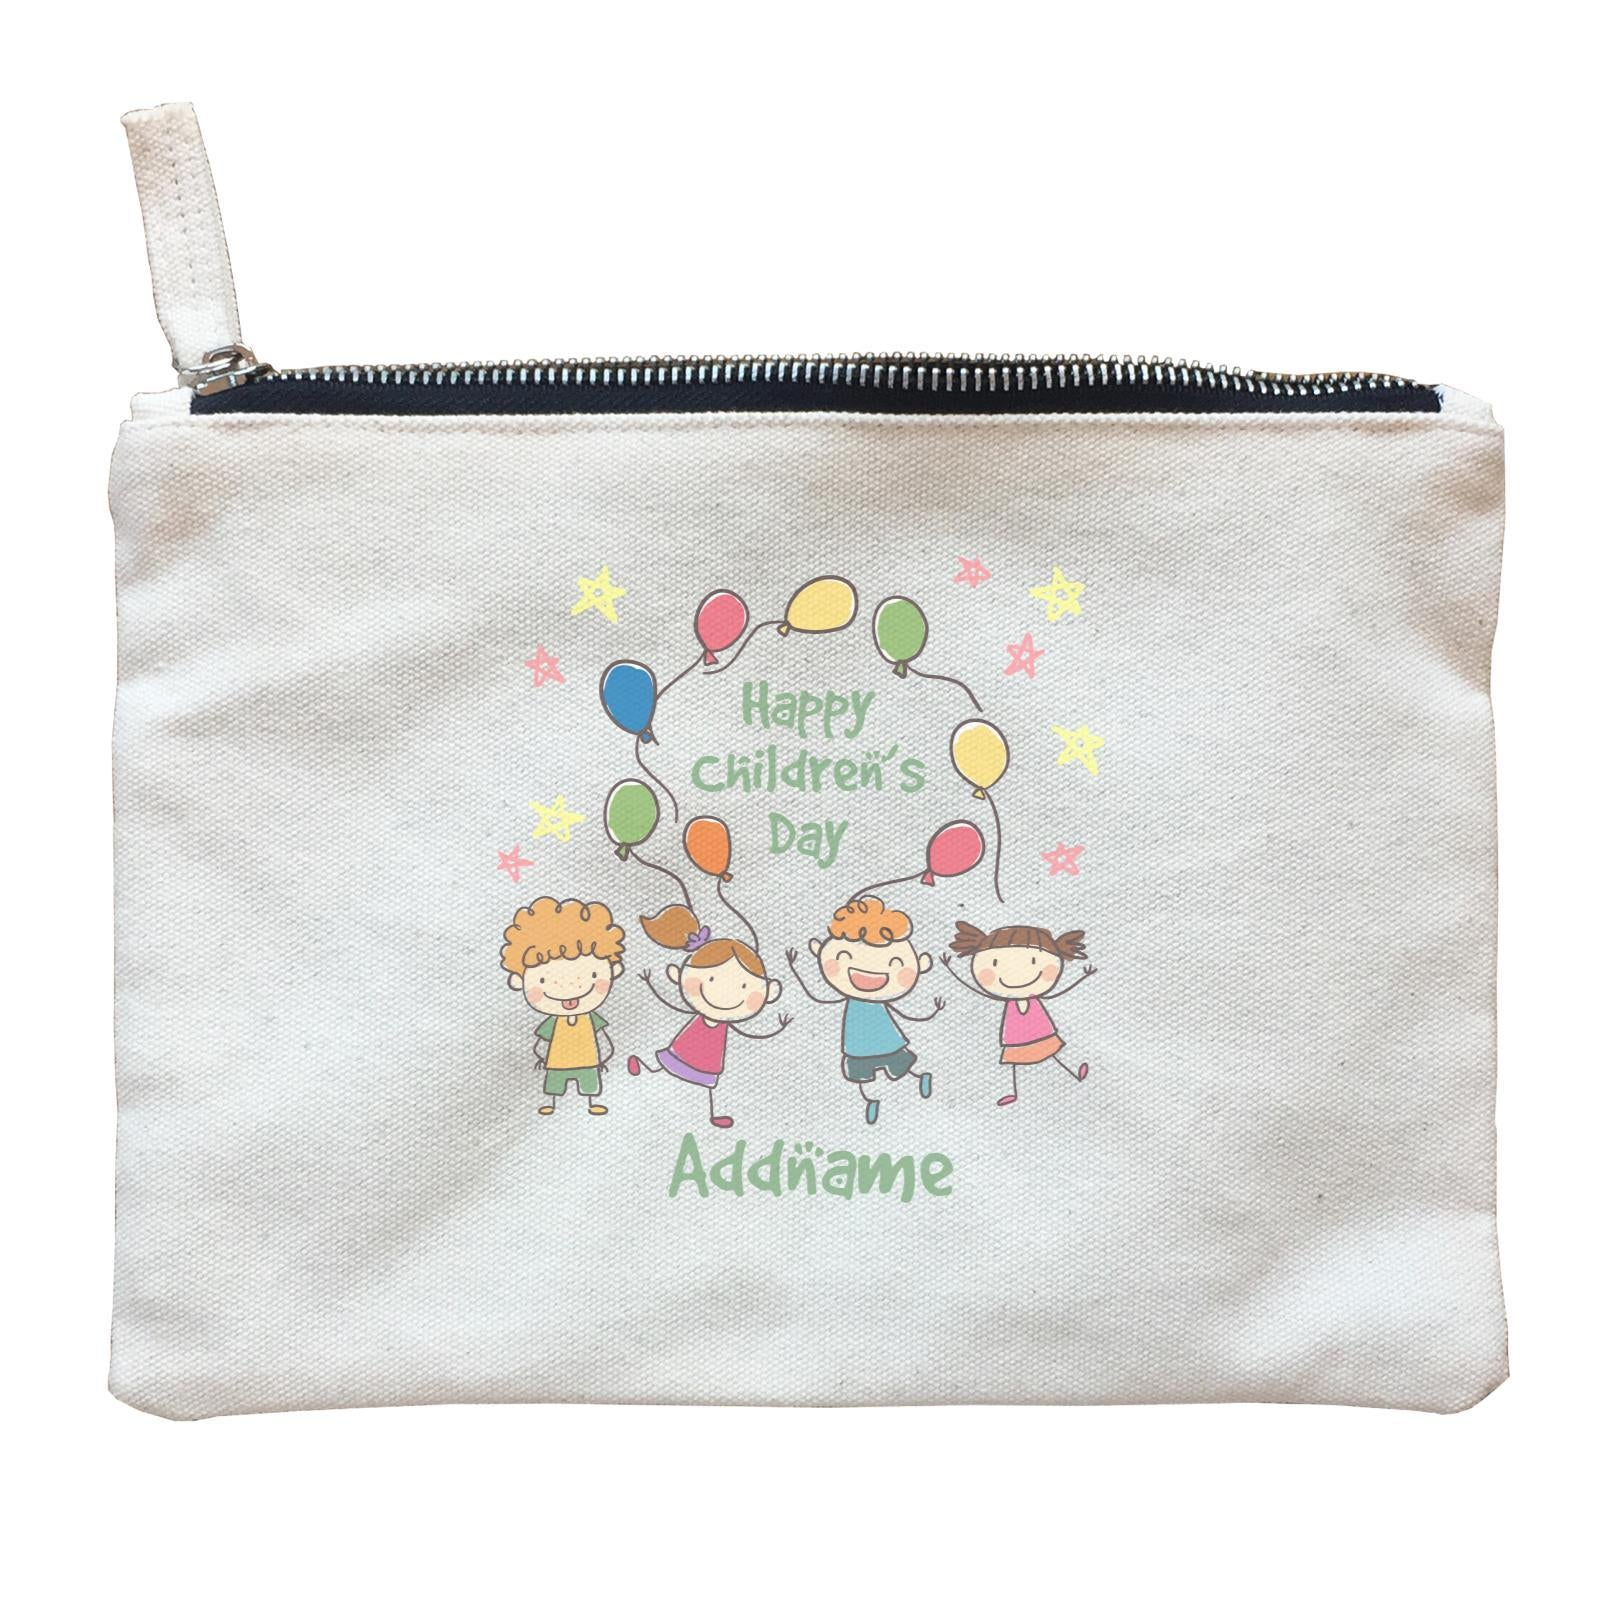 Children's Day Gift Series Four Cute Children With Balloons Addname  Zipper Pouch